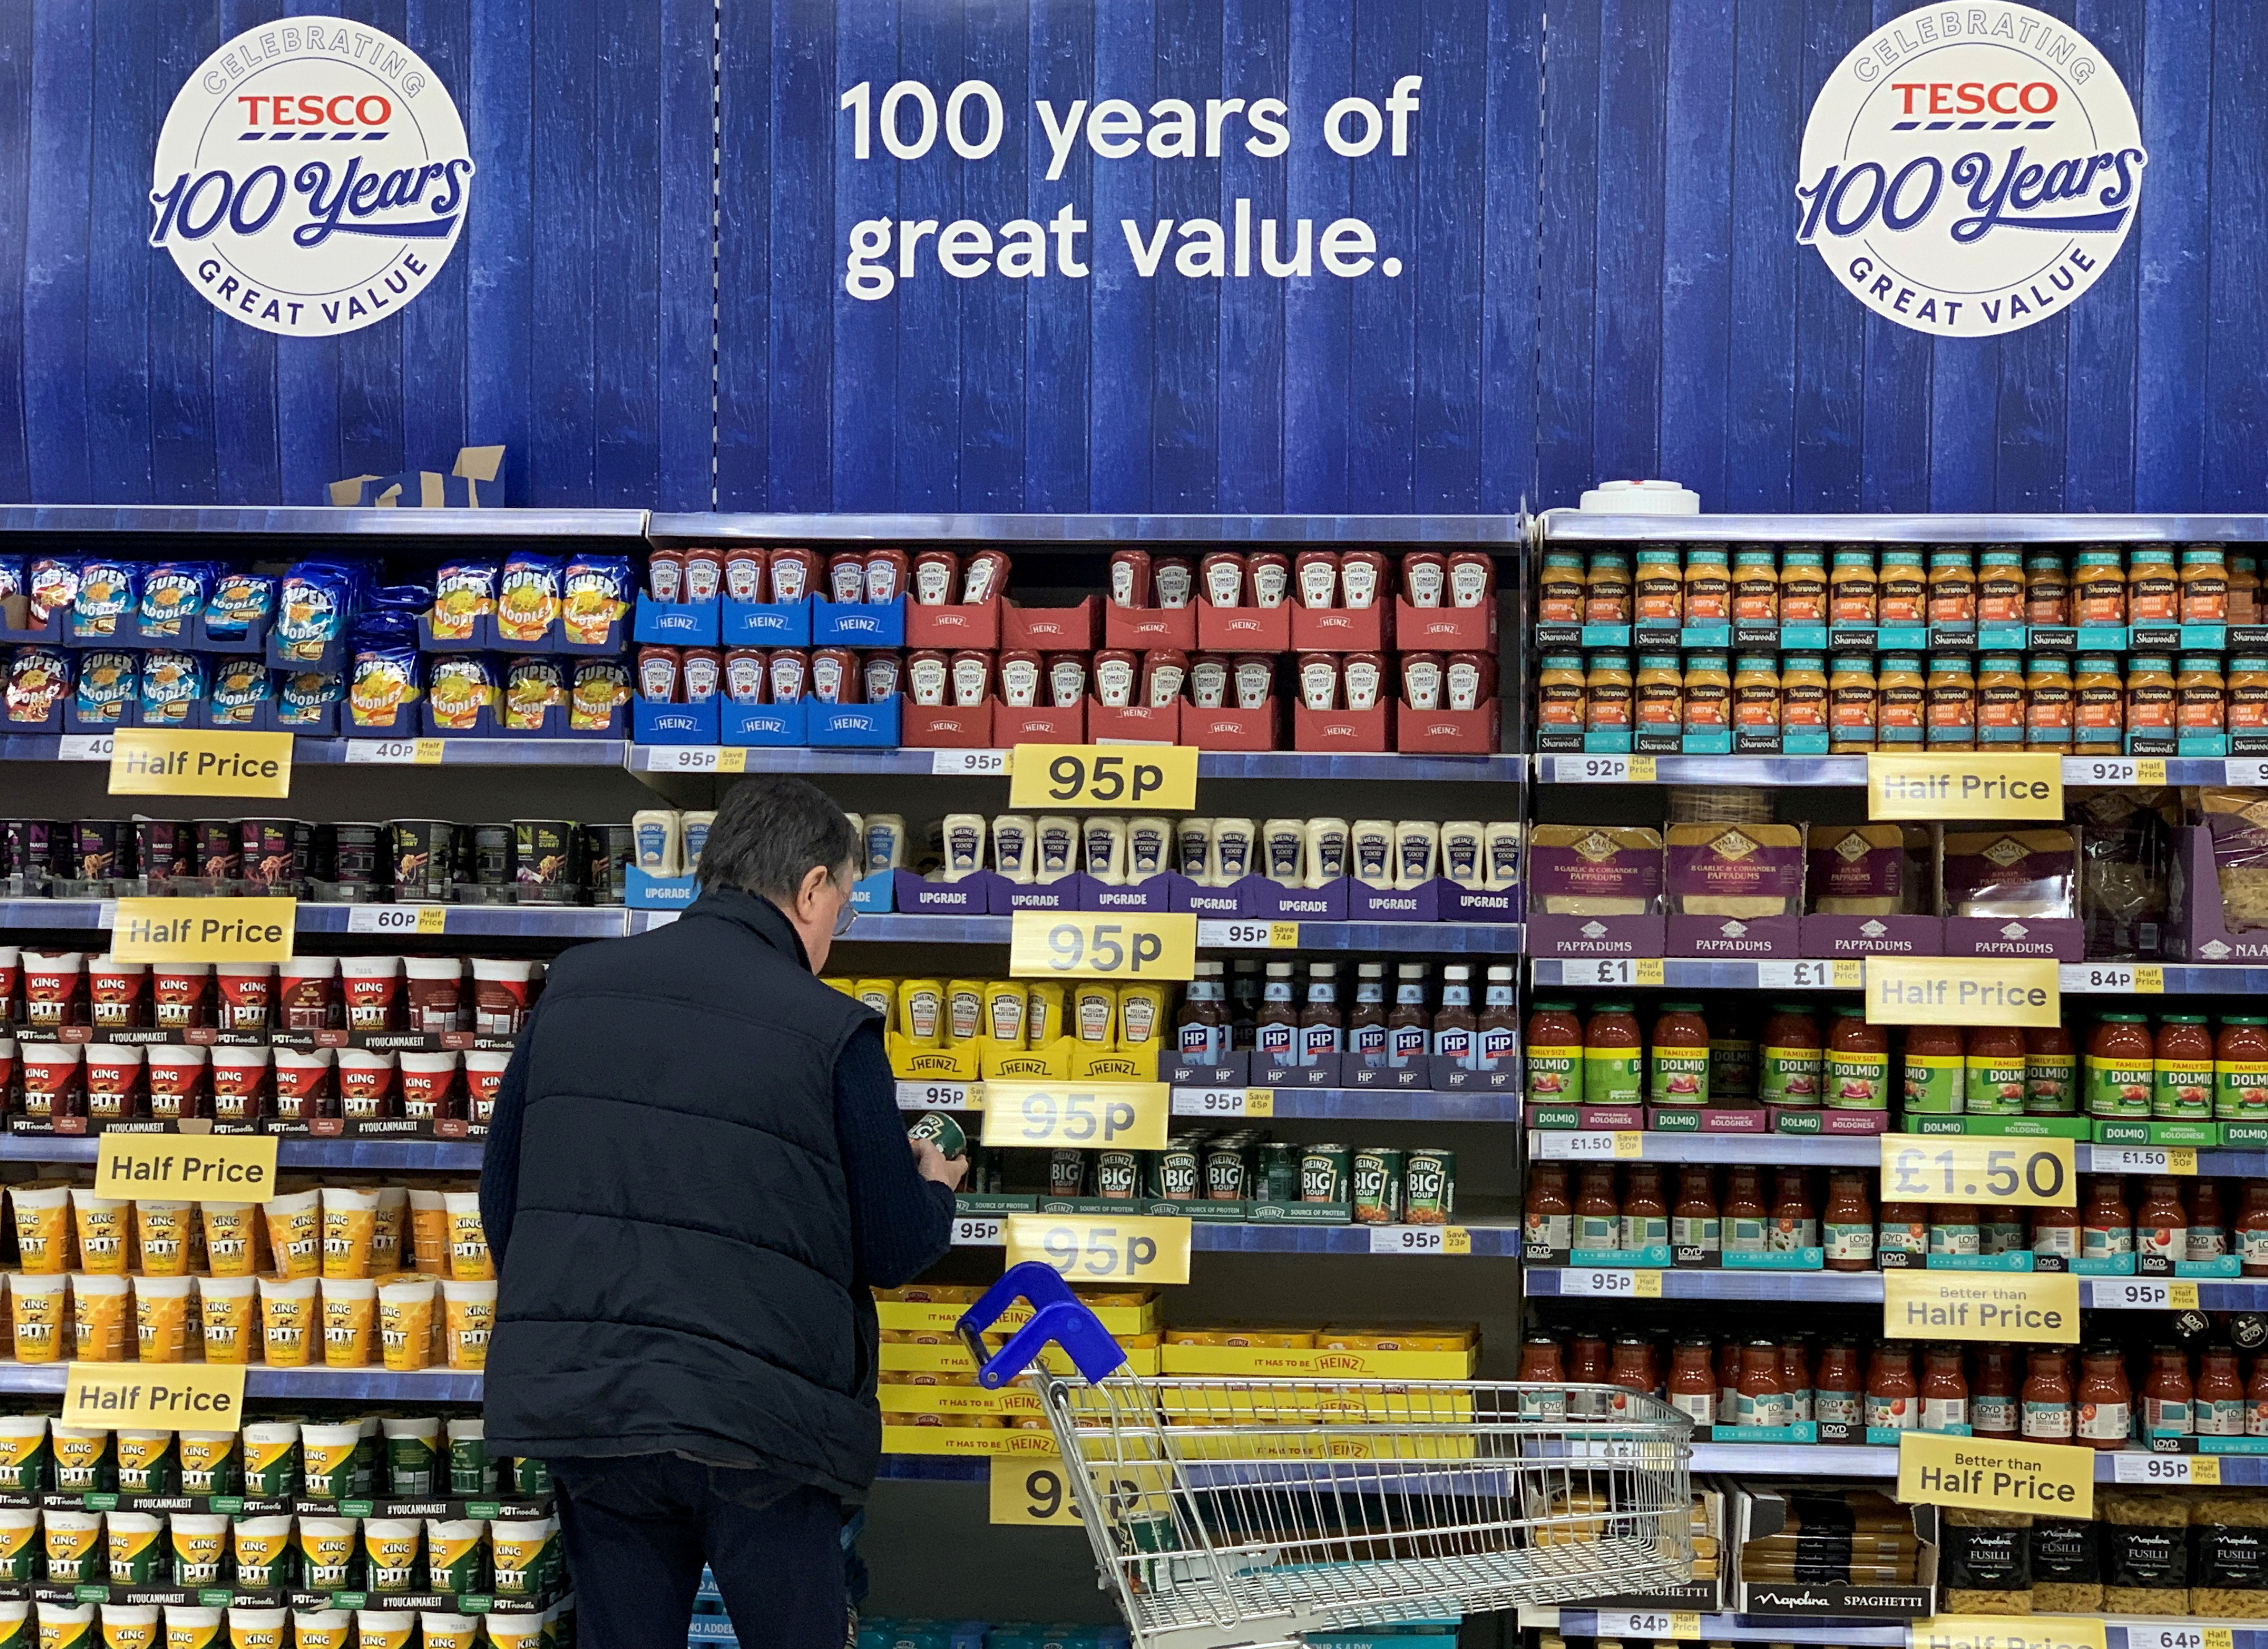 Tesco's UK sales growth slows as pandemic restrictions ease